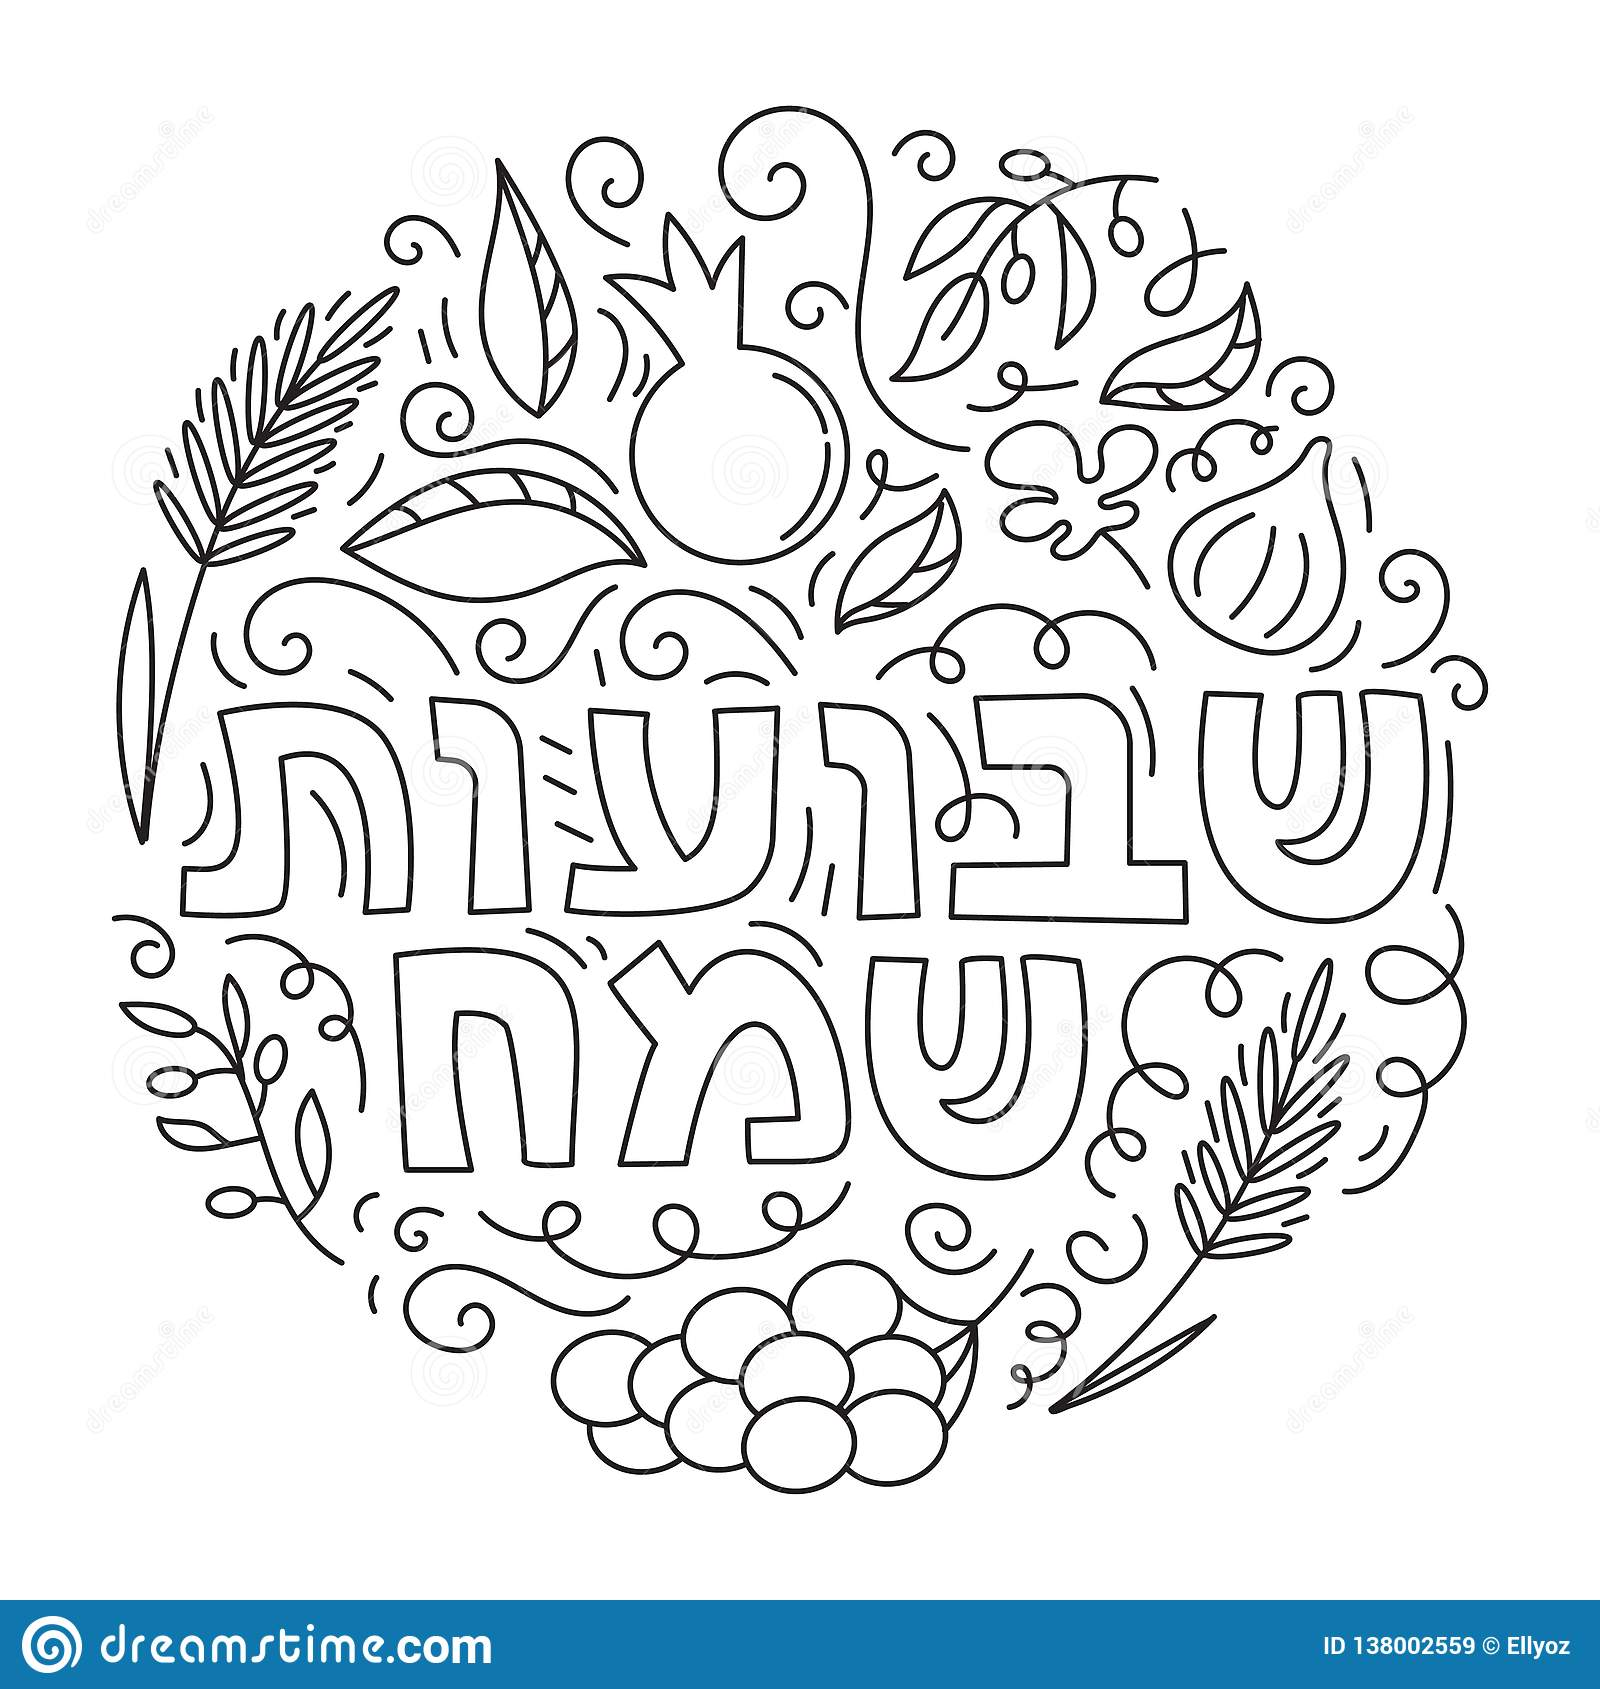 Shavuot Jewish Holiday Coloring Page Stock Vector Illustration Of